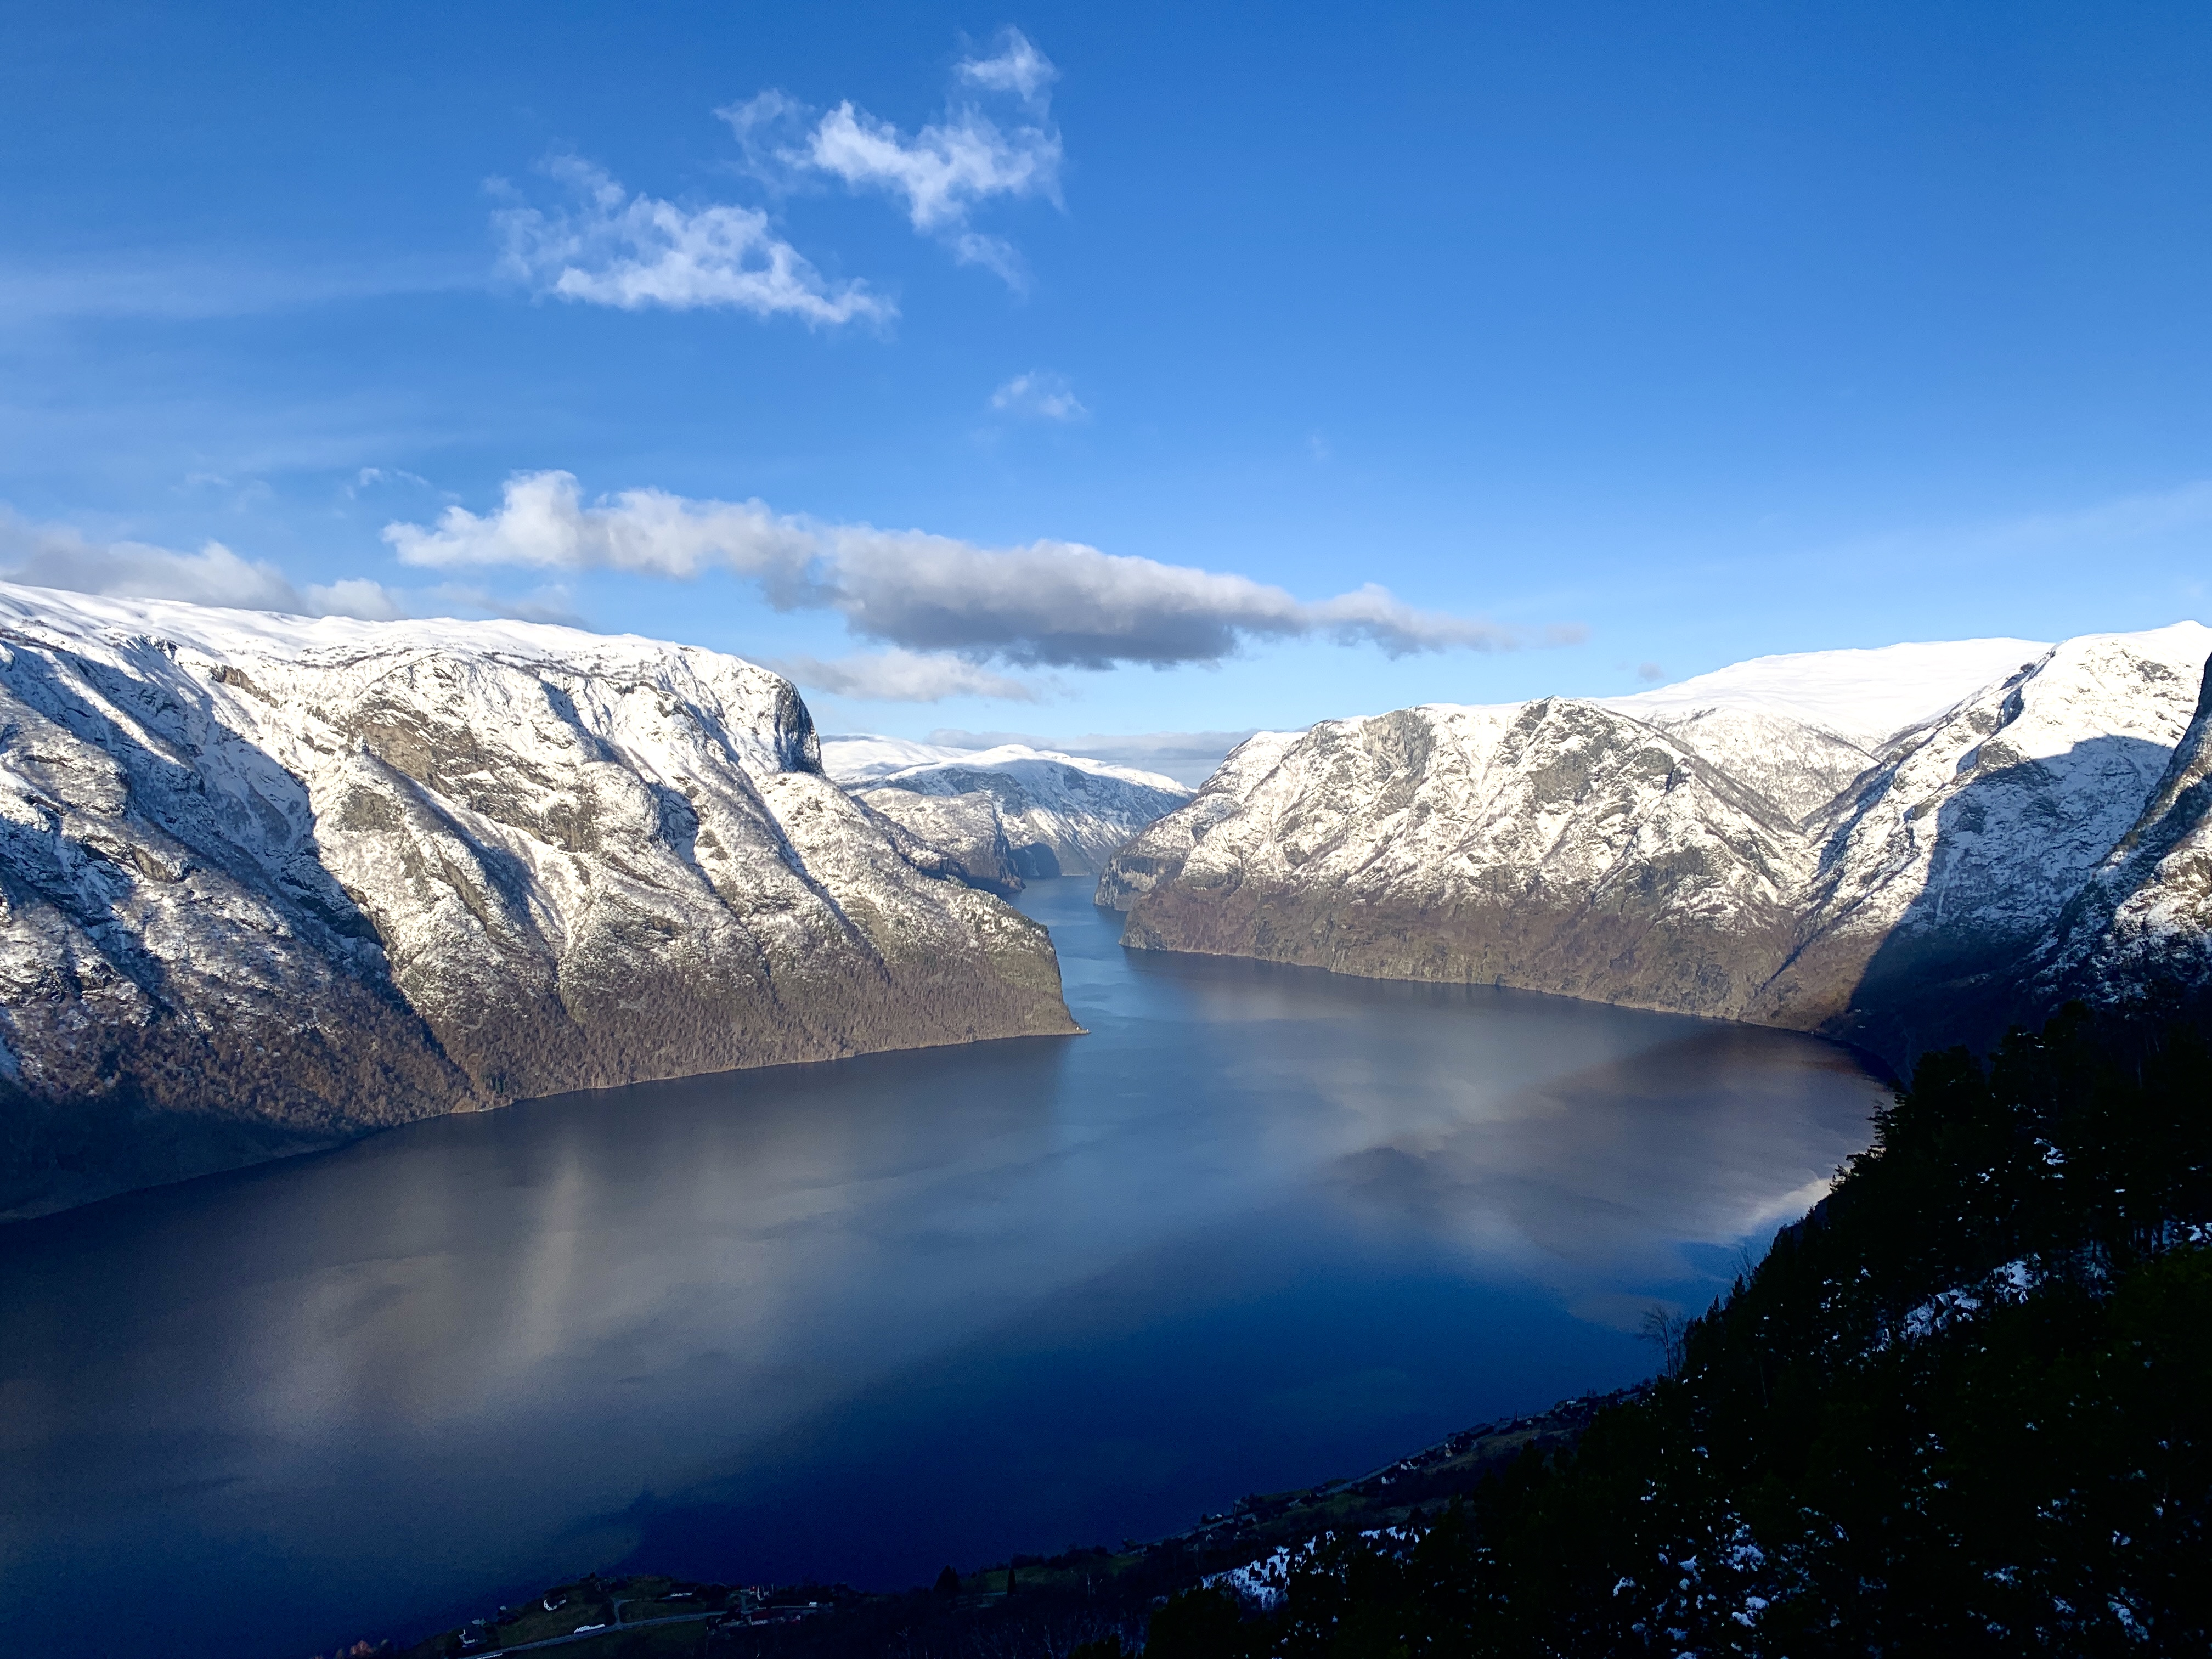 A Sogne-fjord